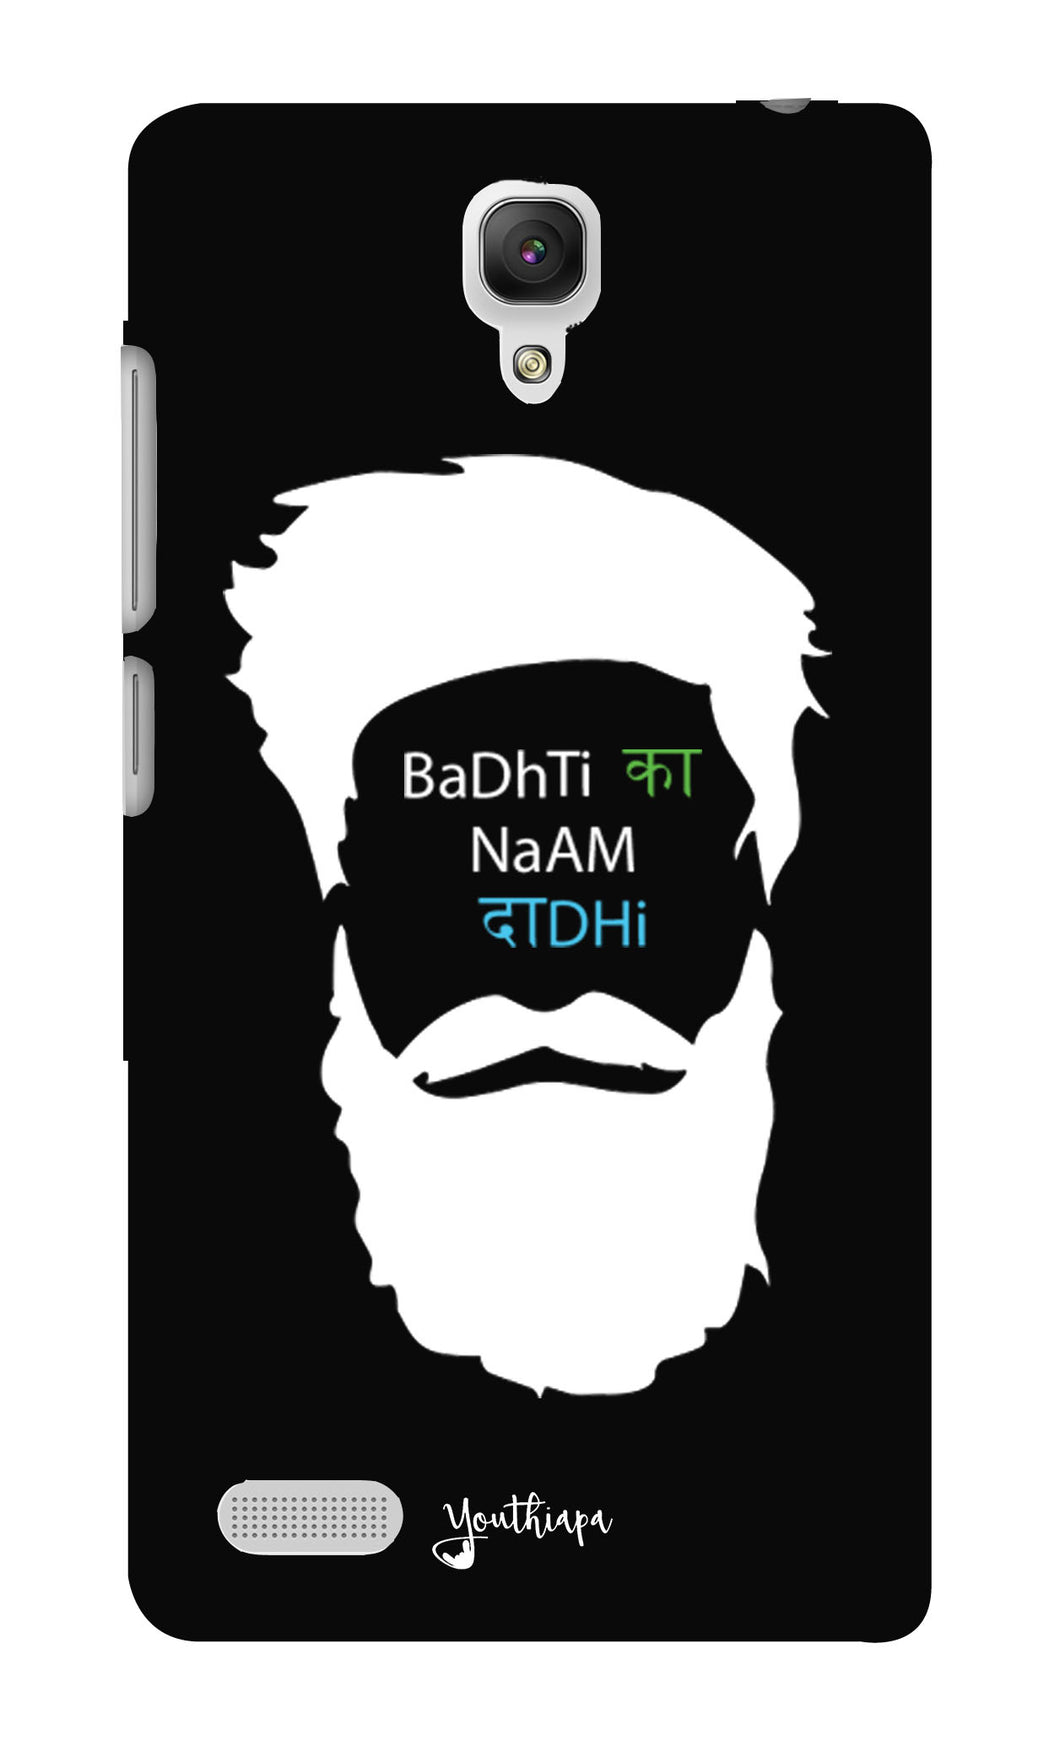 The Beard Edition for XIAOMI MI NOTE 4G